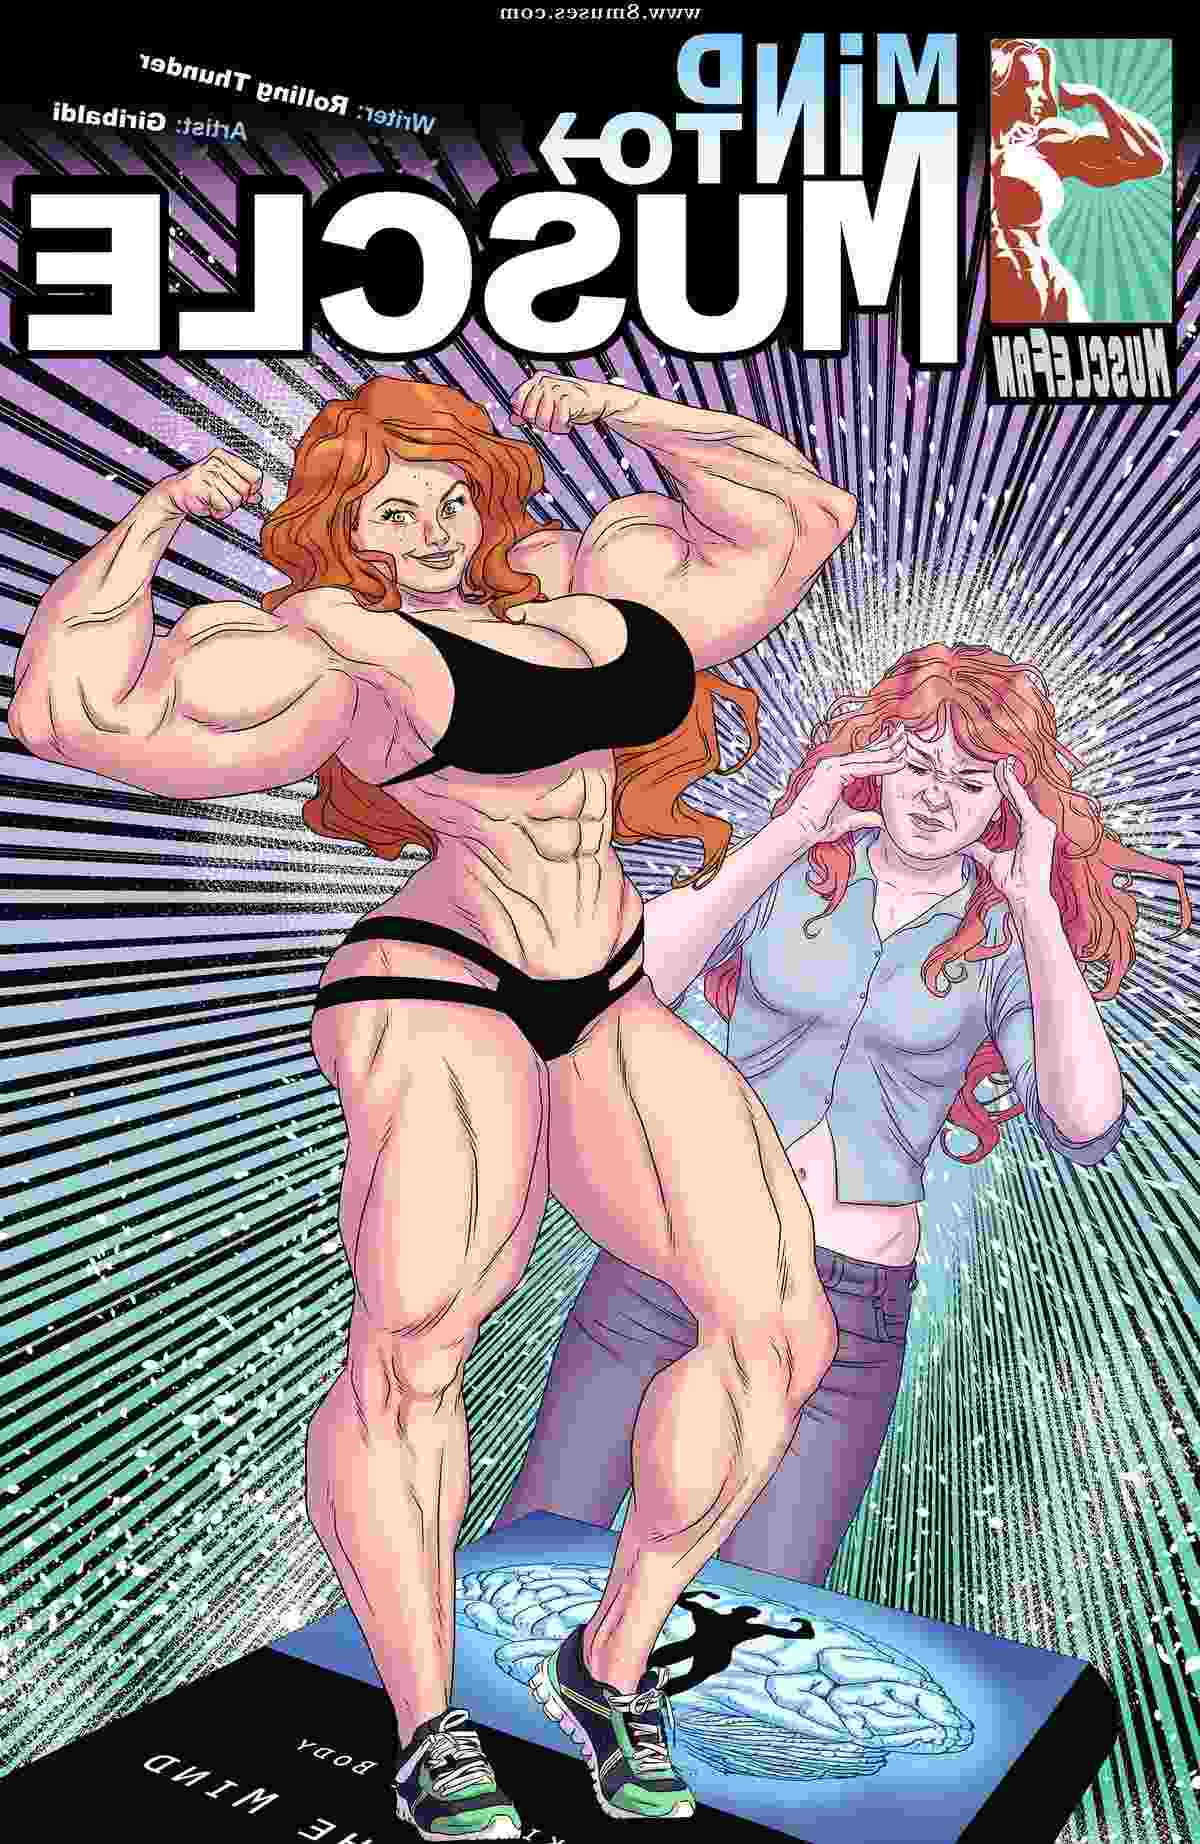 MuscleFan-Comics/Mind-Into-Muscle Mind_Into_Muscle__8muses_-_Sex_and_Porn_Comics.jpg